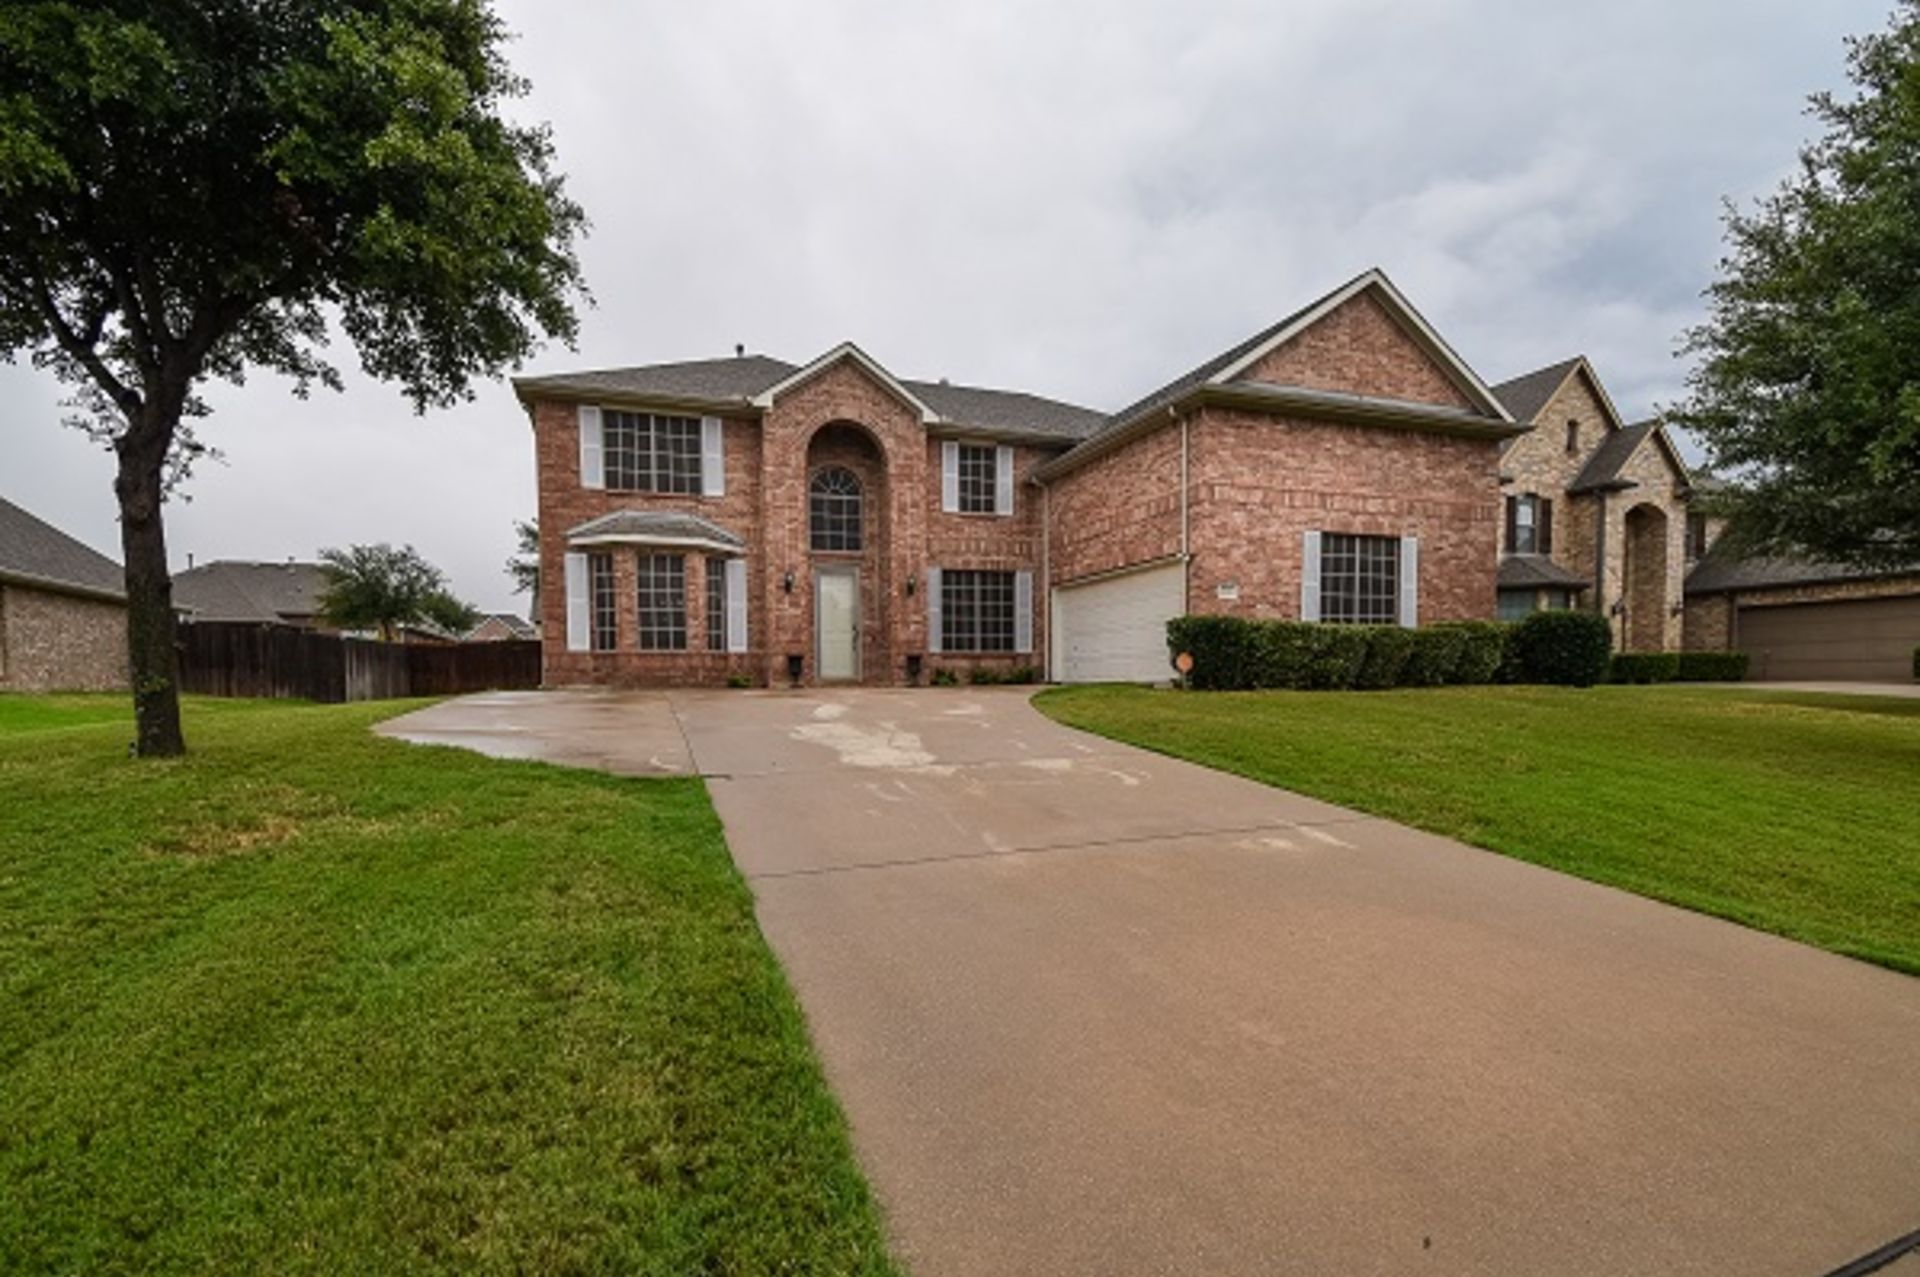 Homes For Sale in DeSoto Texas